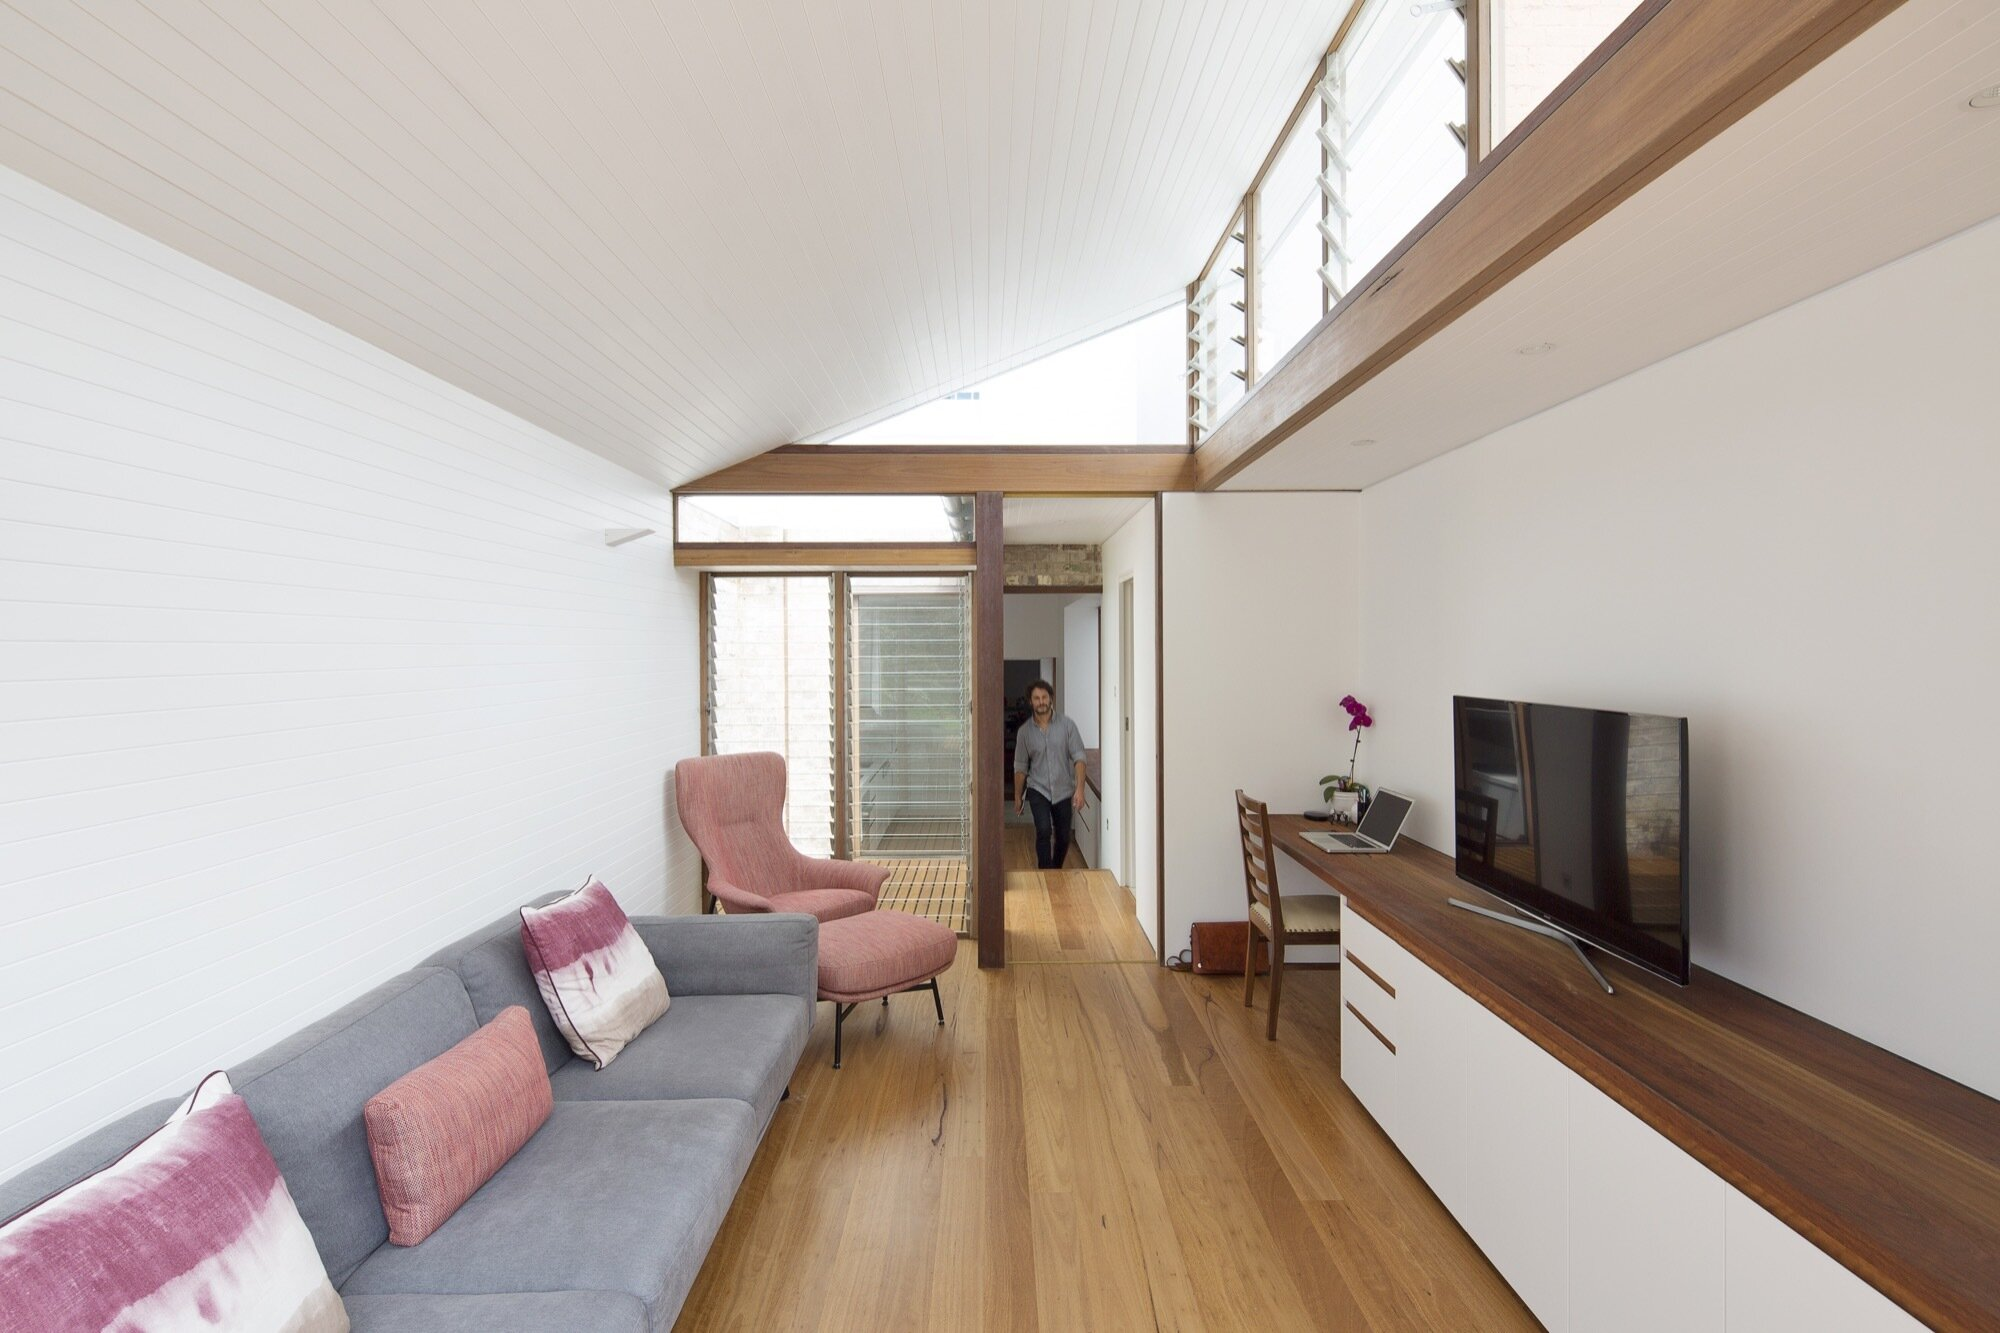 A narrow house renovation in sydney for two retired teachers for Living room ideas townhouse